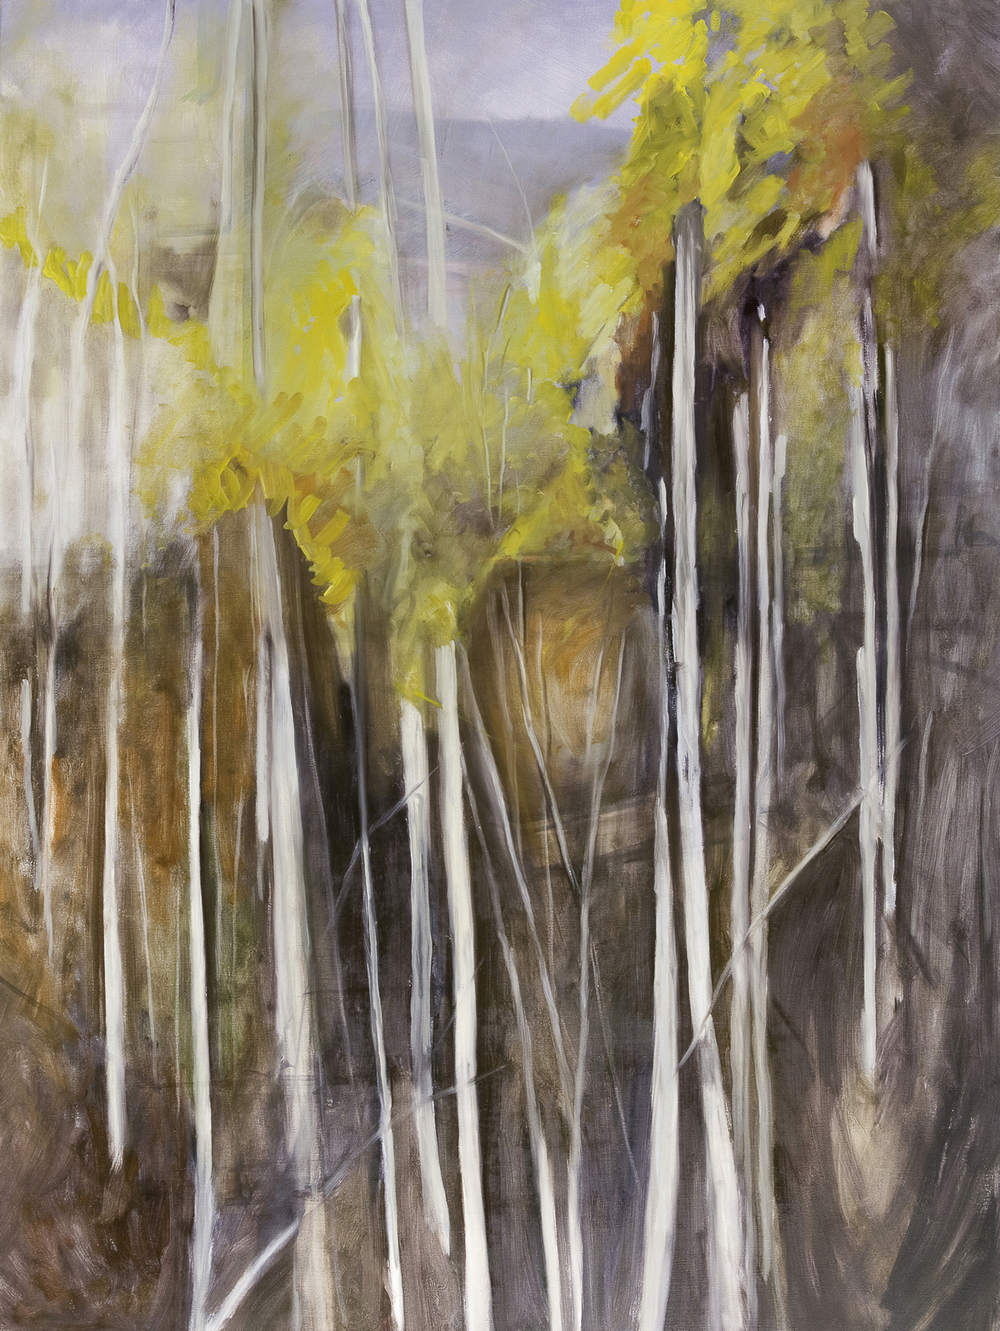 Giallo, 2009, Oil on Canvas, Oil on Canvas, 72 x 54 inches